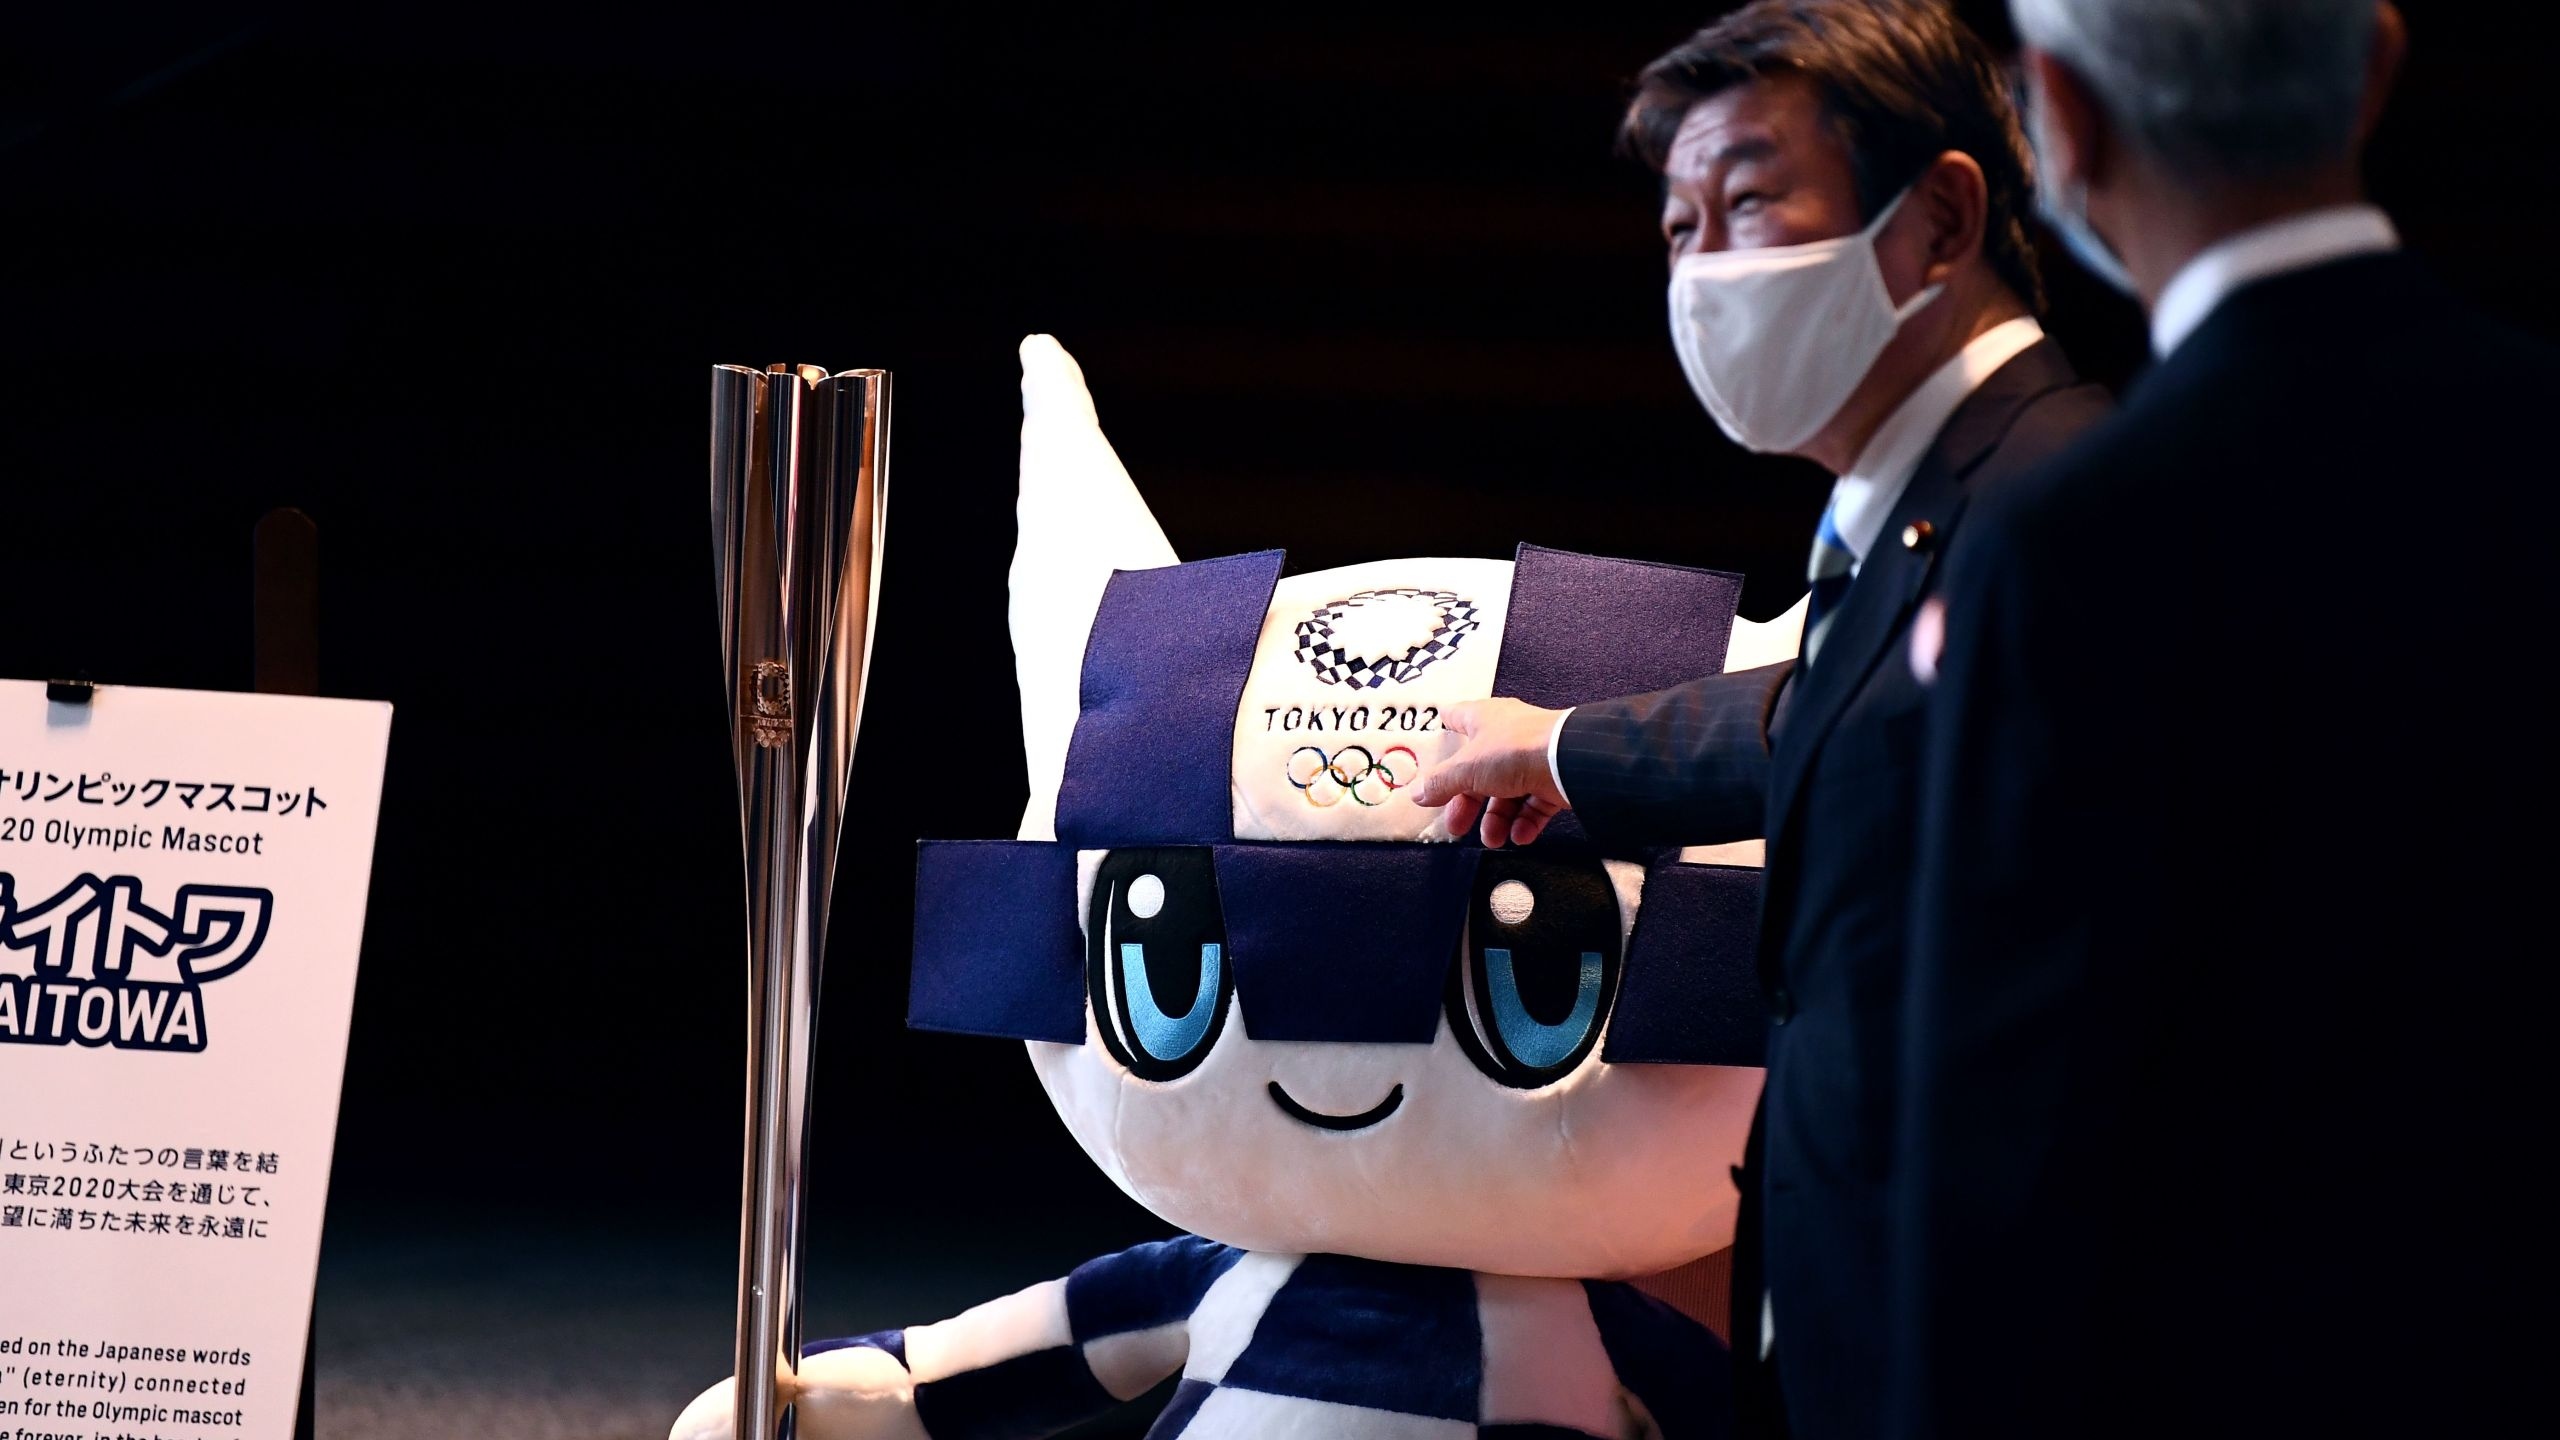 Japan's Foreign Minister Toshimitsu Motegi (L) and India's Foreign Minister Subrahmanyam Jaishankar (R) look at Tokyo 2020 Olympic Games mascot Miraitowa as they leave the prime minister's office following a meeting in Tokyo on October 6, 2020. (Photo by CHARLY TRIBALLEAU / POOL / AFP)